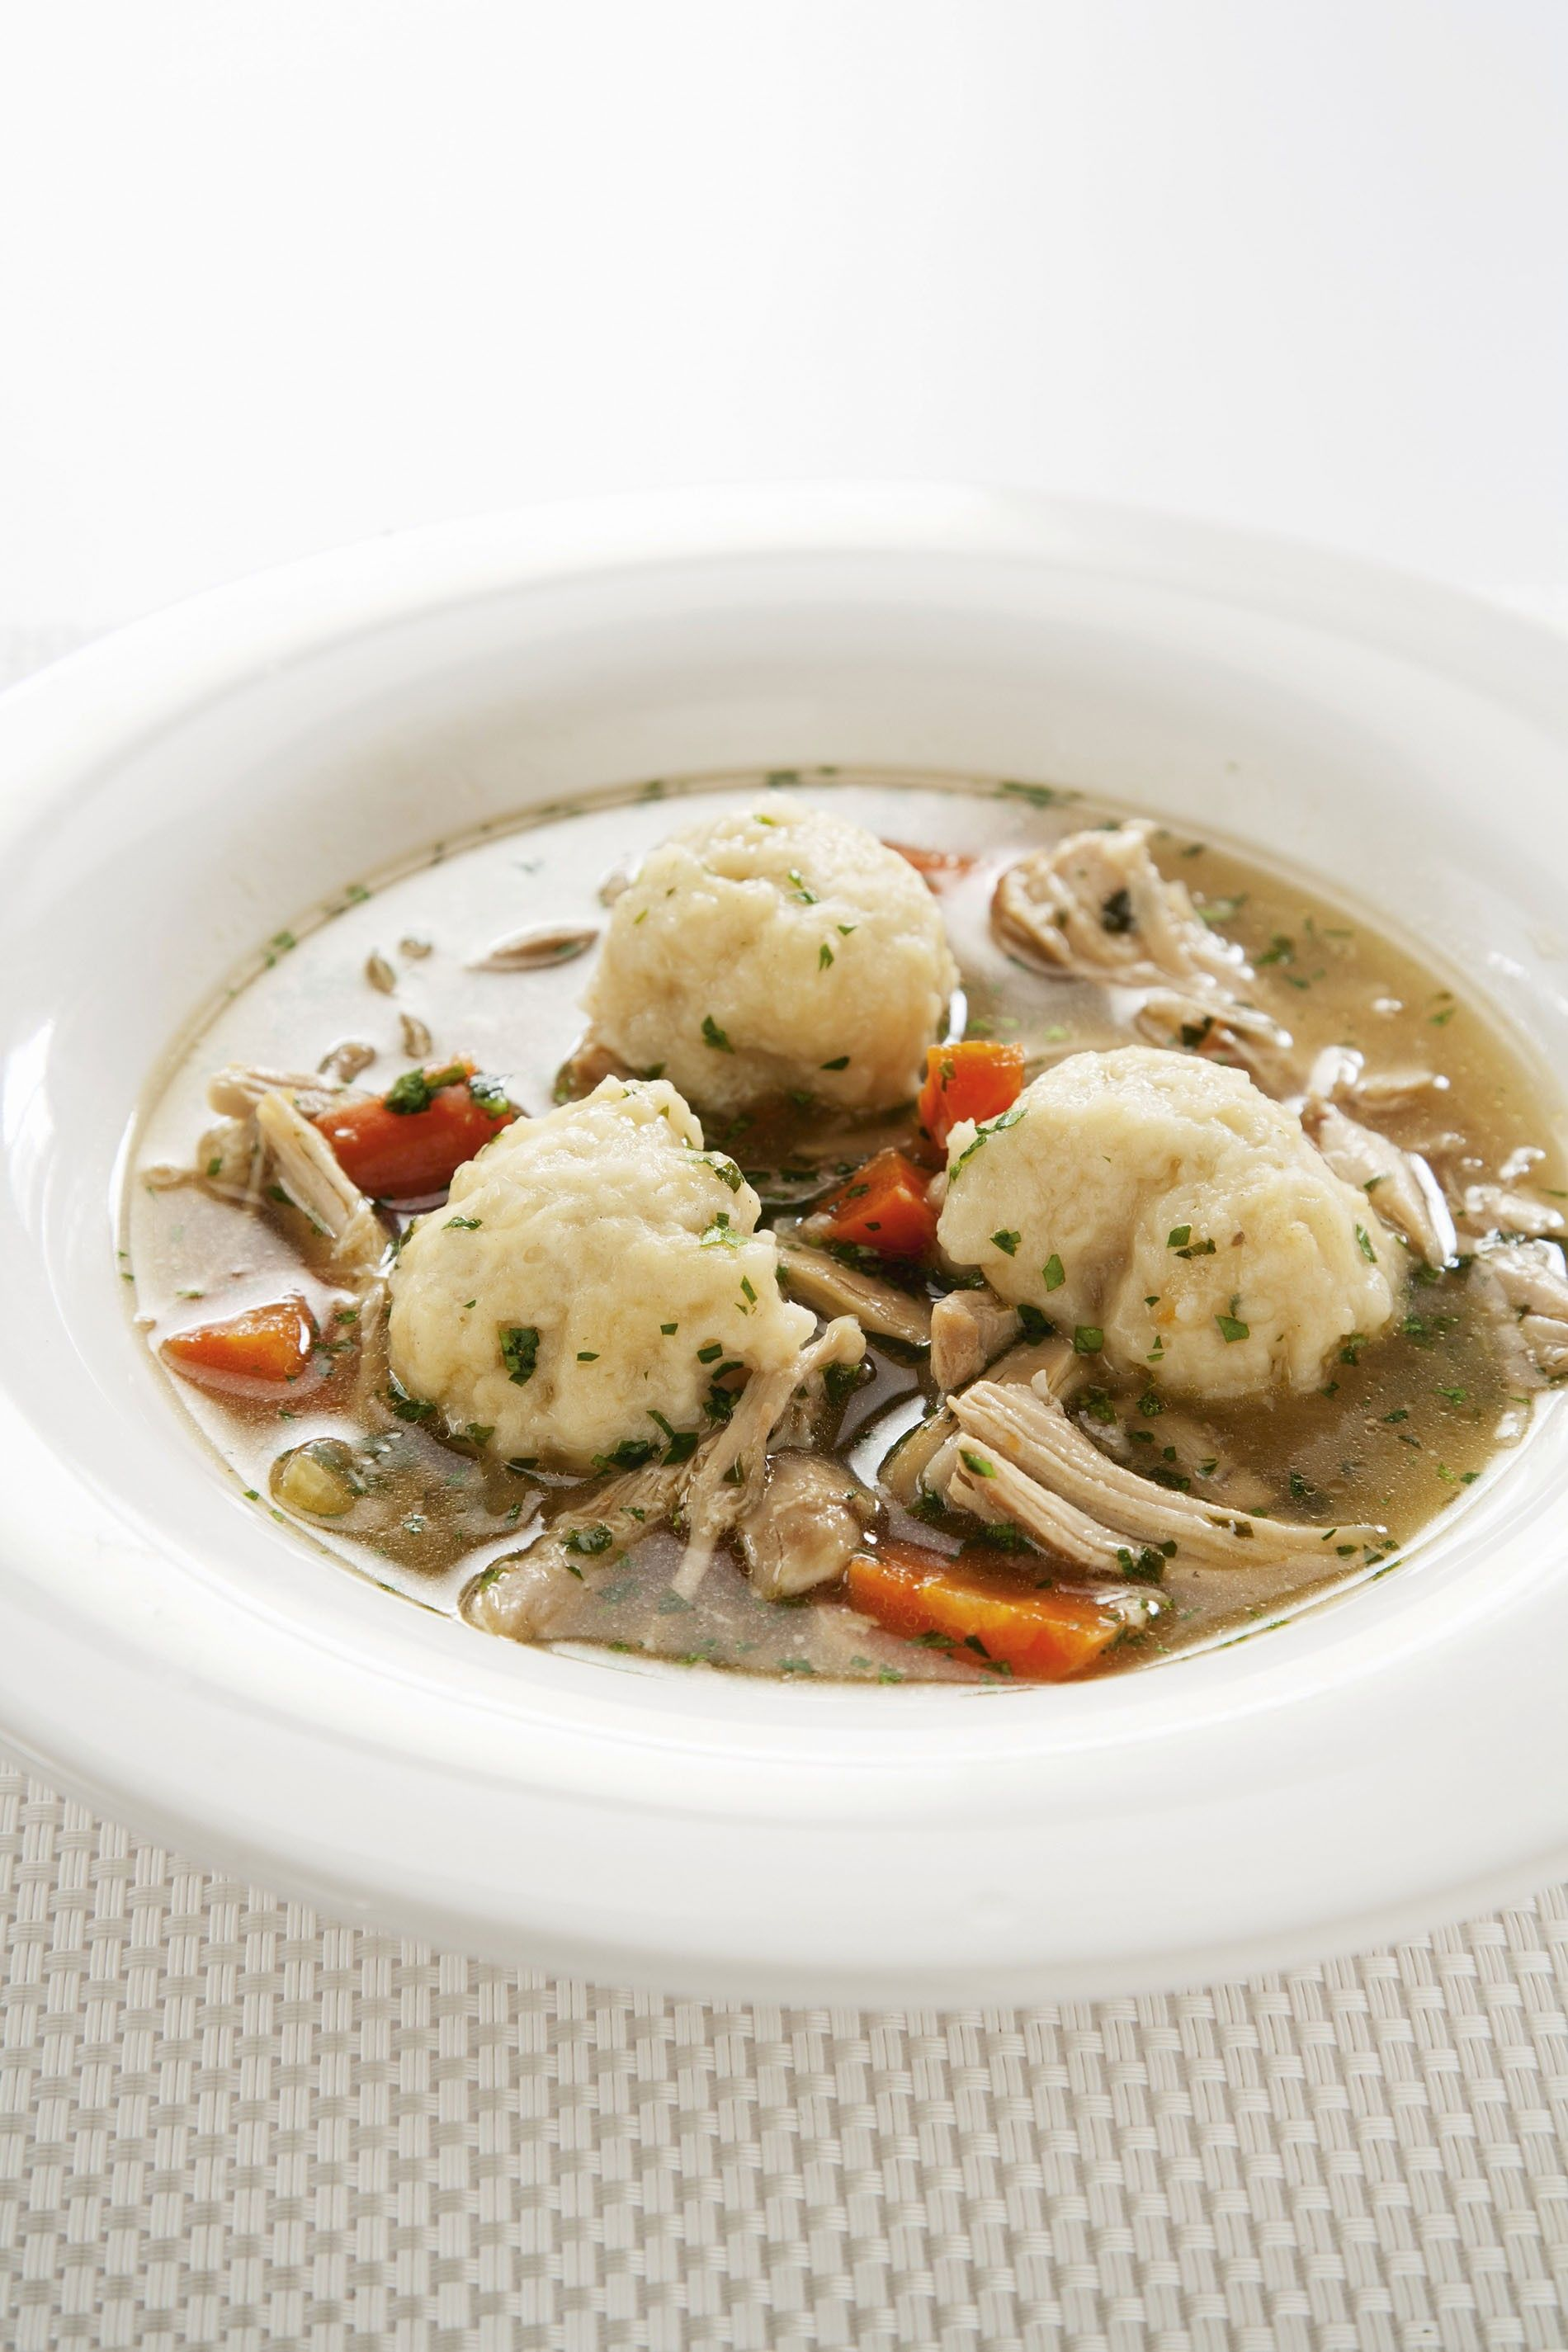 How to make it: Marc Surette's chicken fricot recipe